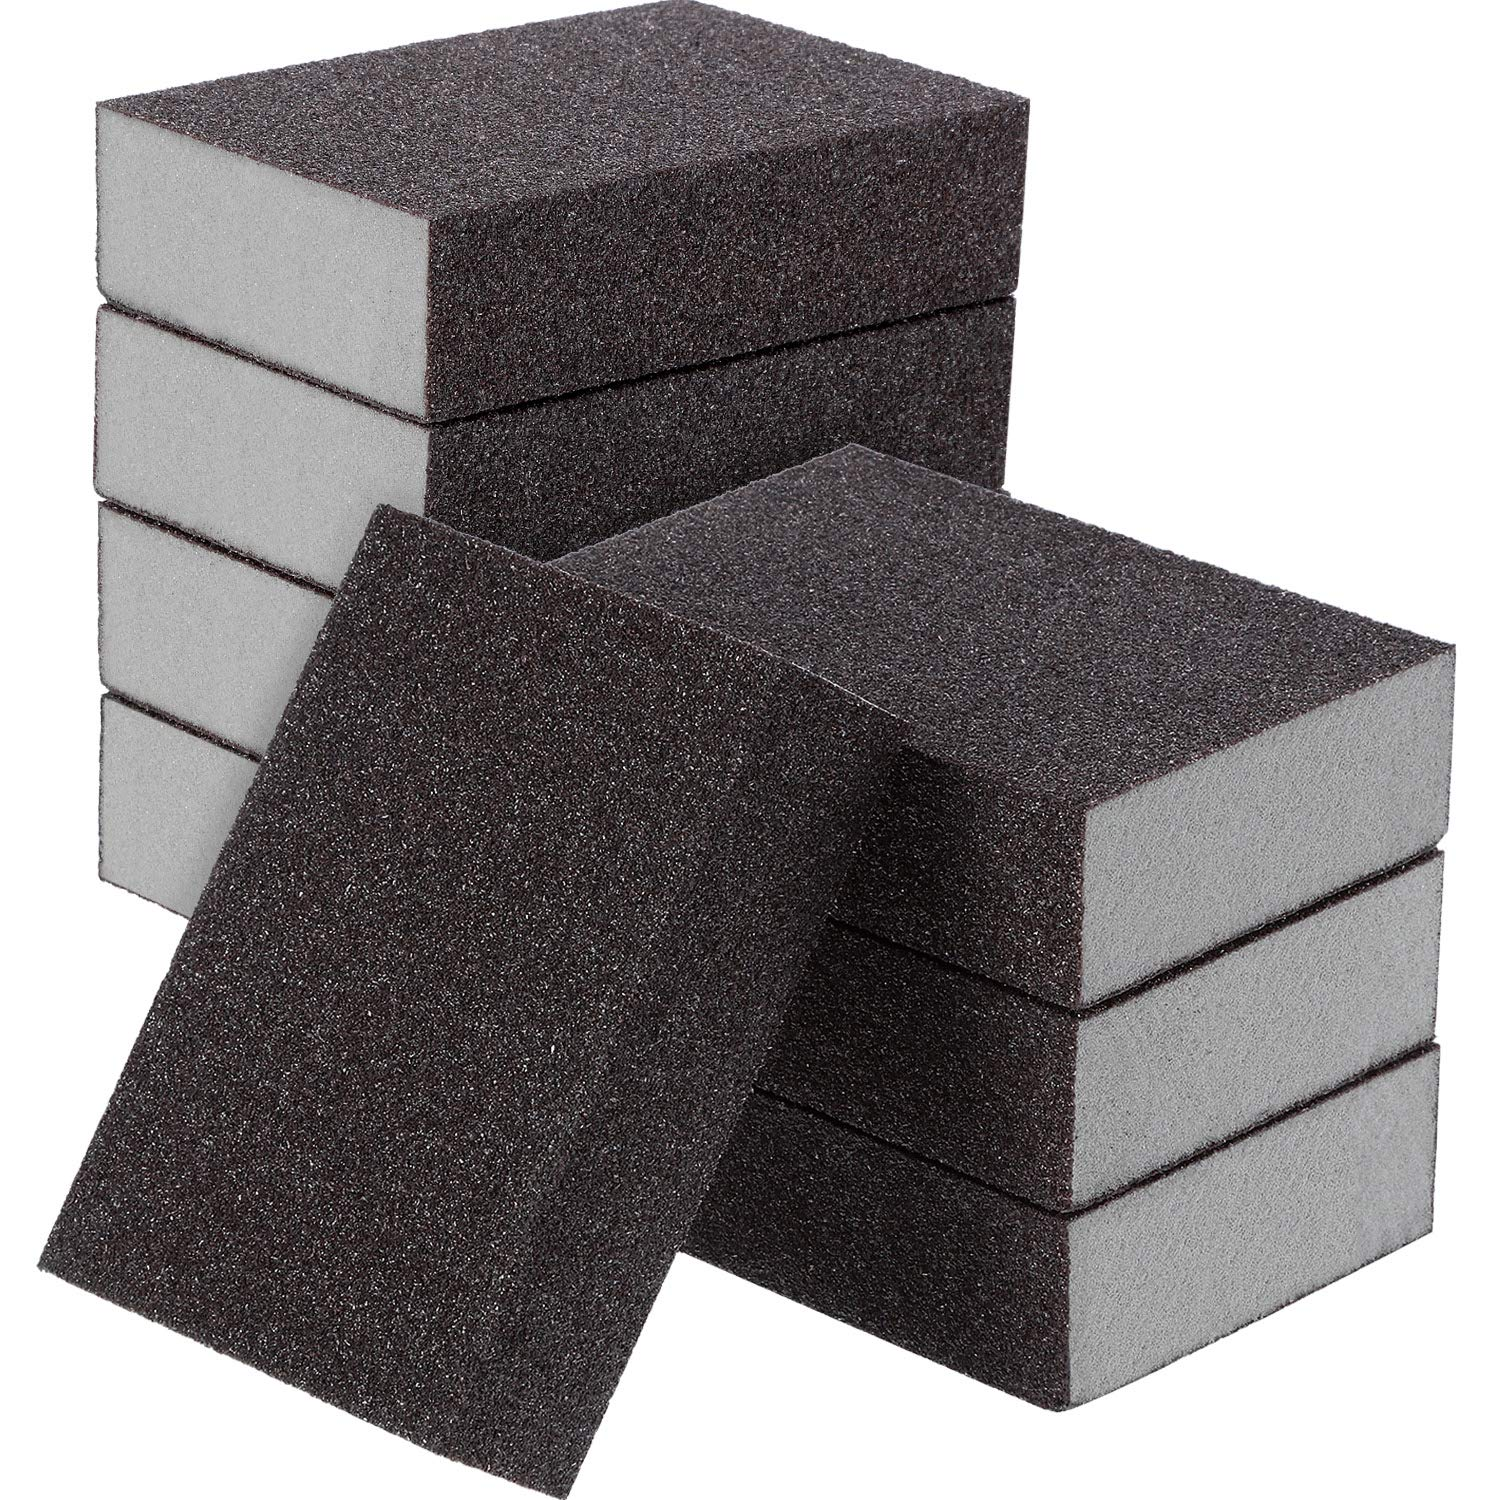 10 and 12 Two-Way Sanding Block